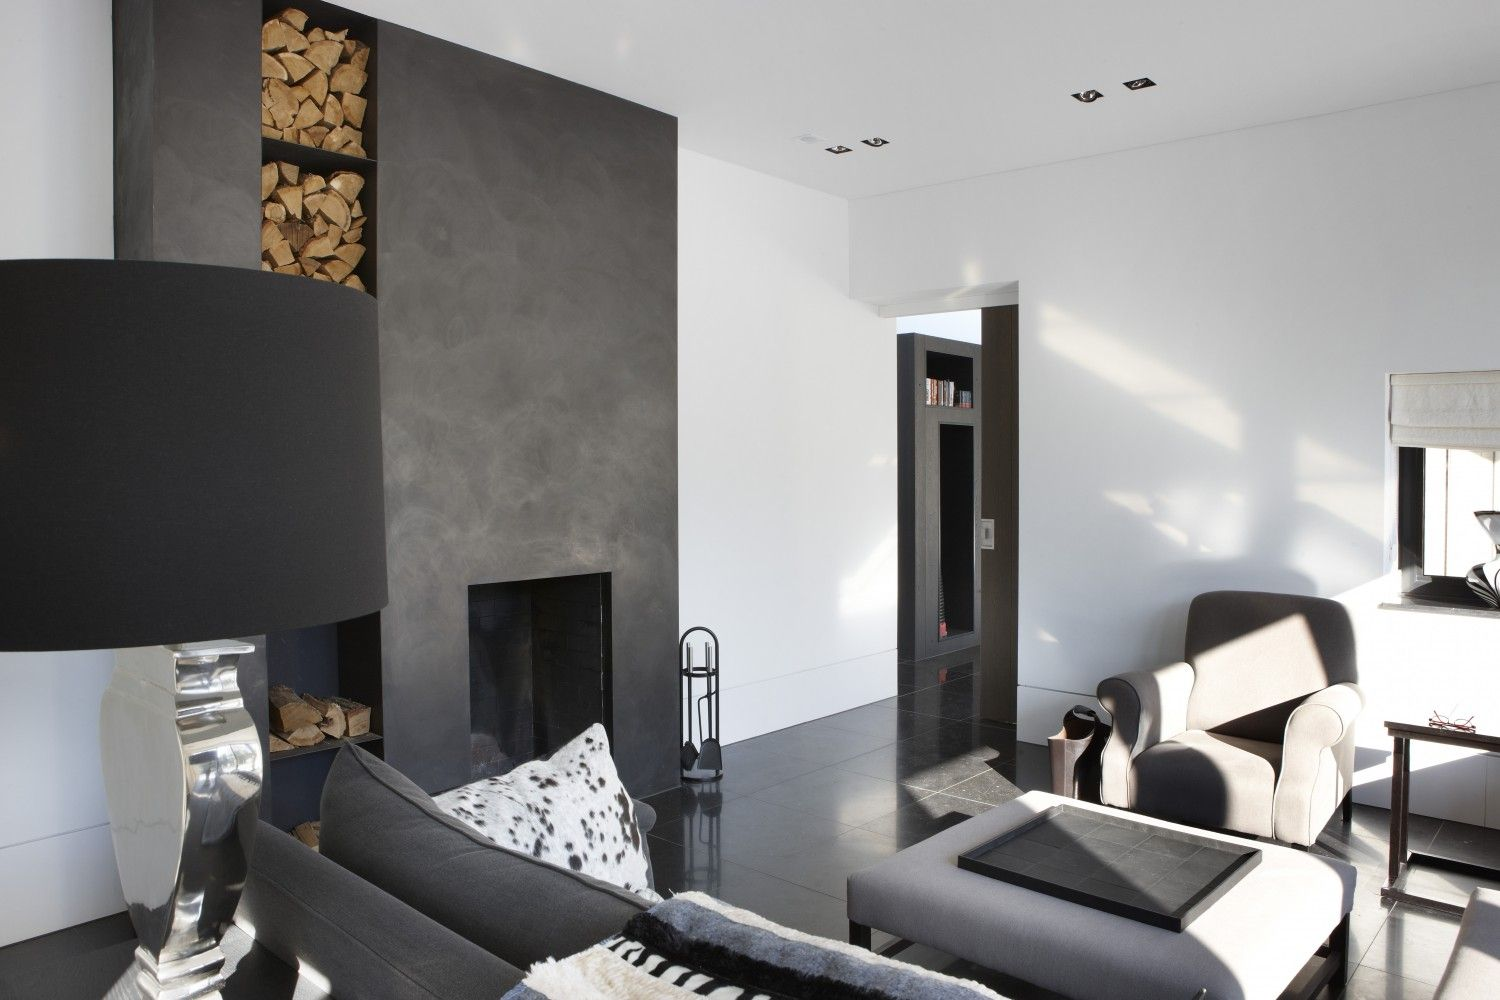 Met, interieur and van on pinterest